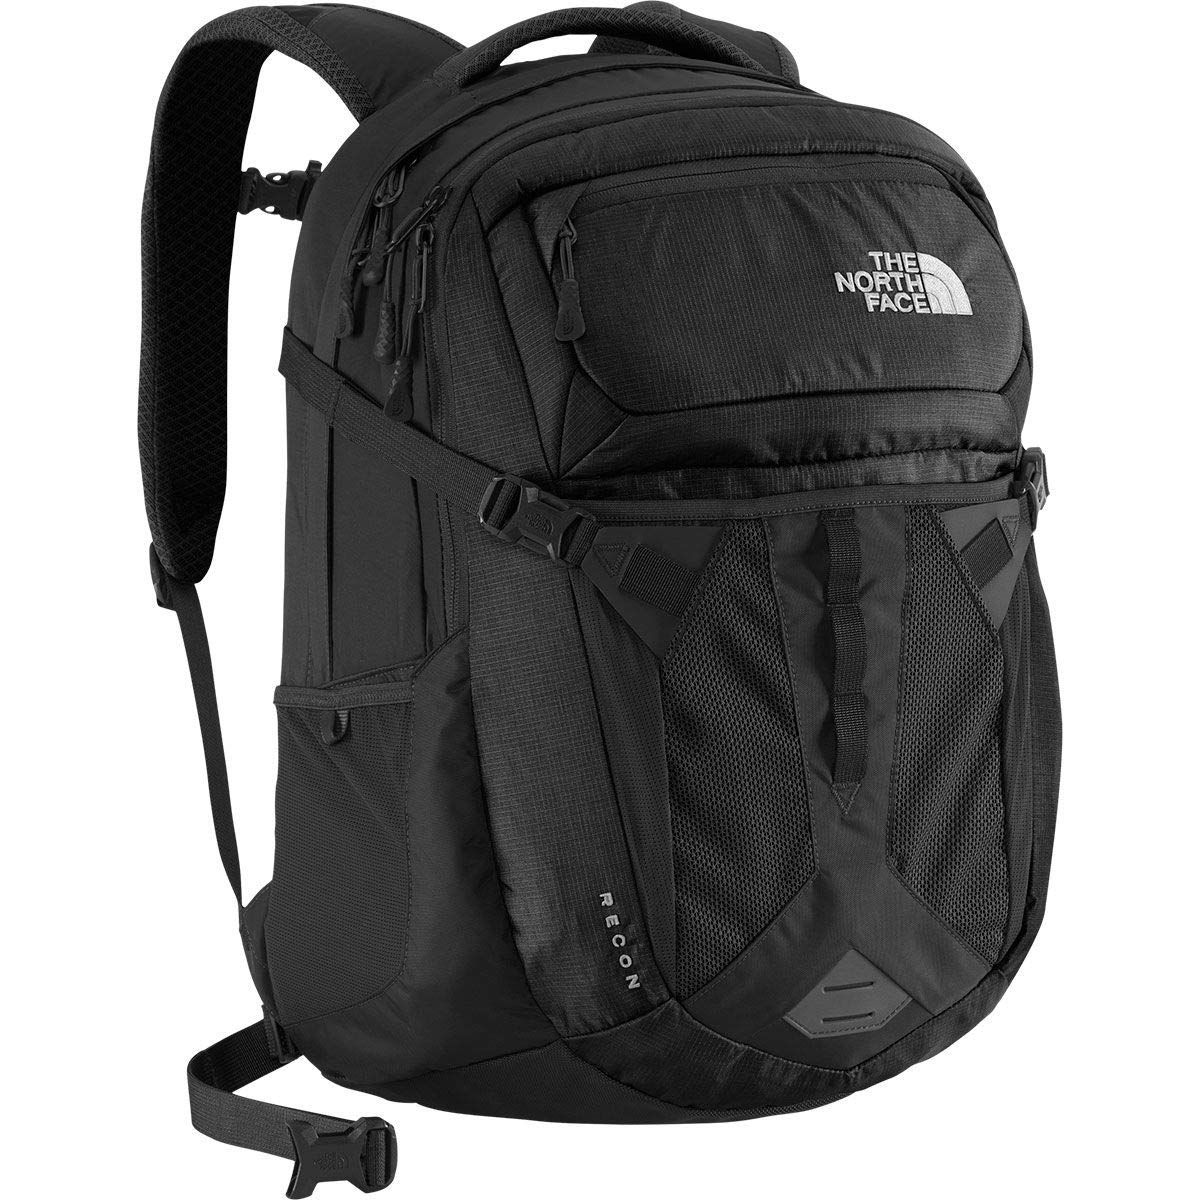 The North Face Recon Backpack - TNF Black - One Size by The North Face